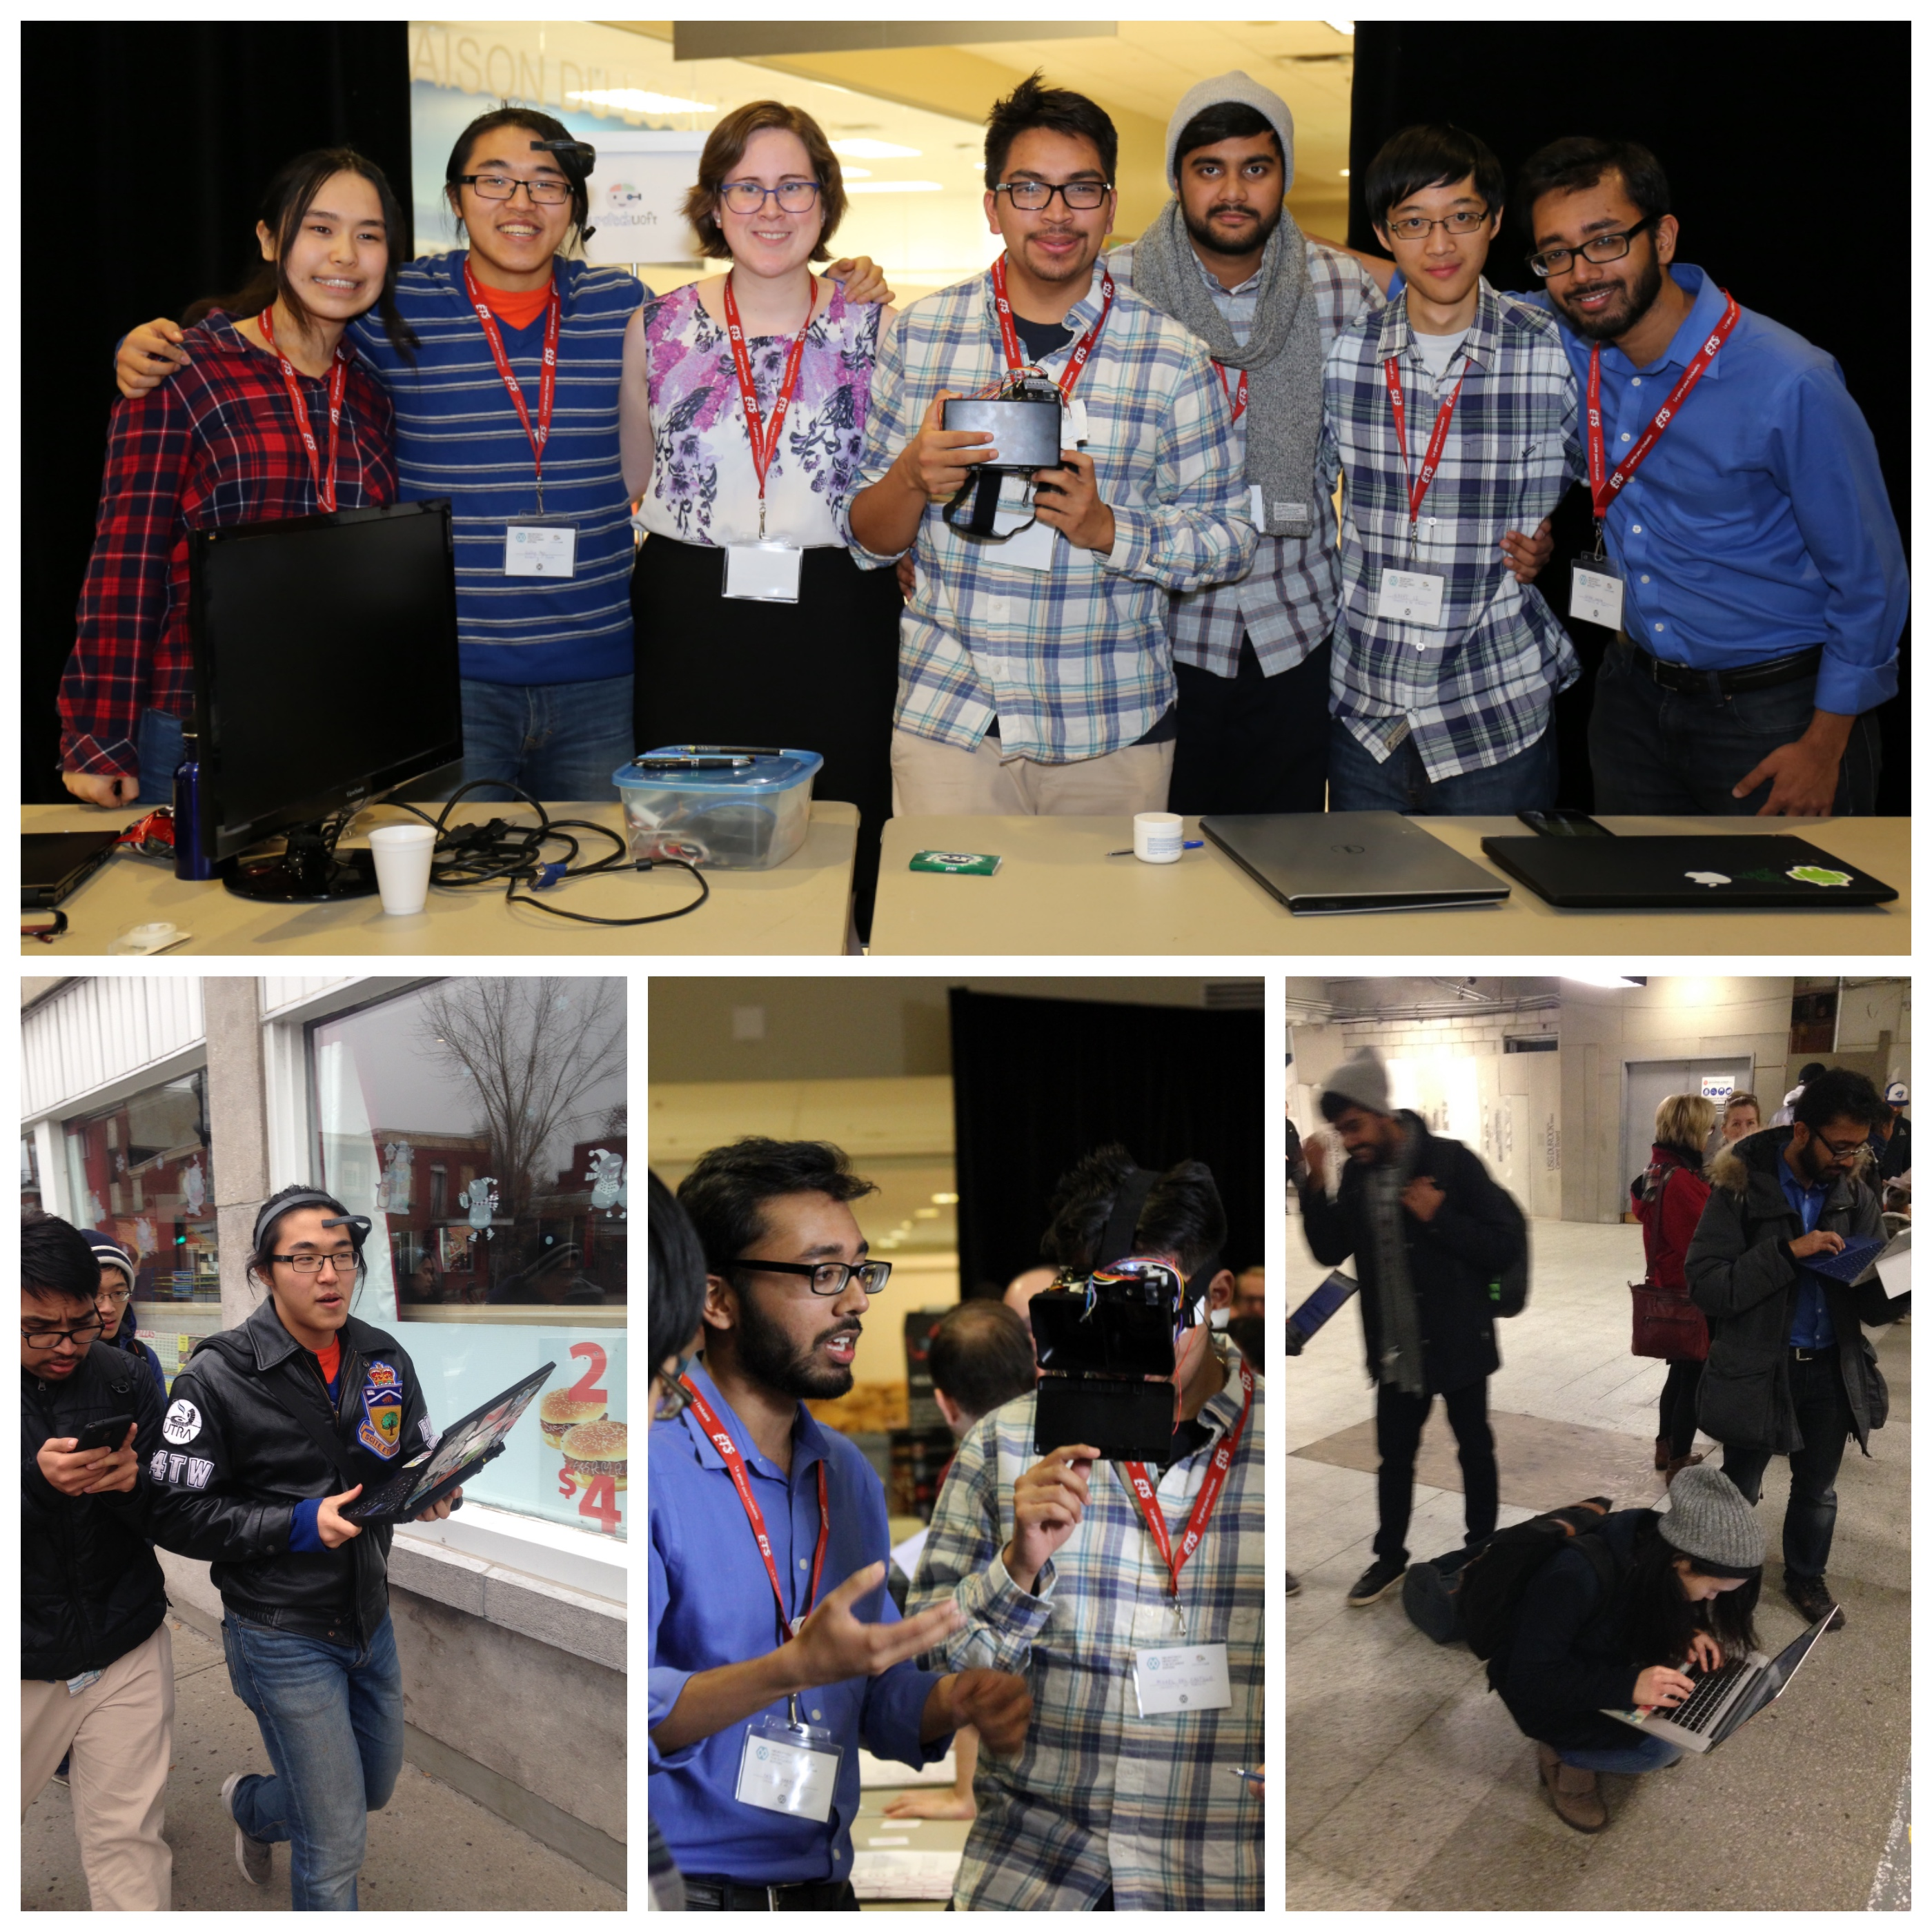 Student Clubs - Demo Day 2016: NeuroTechUofT